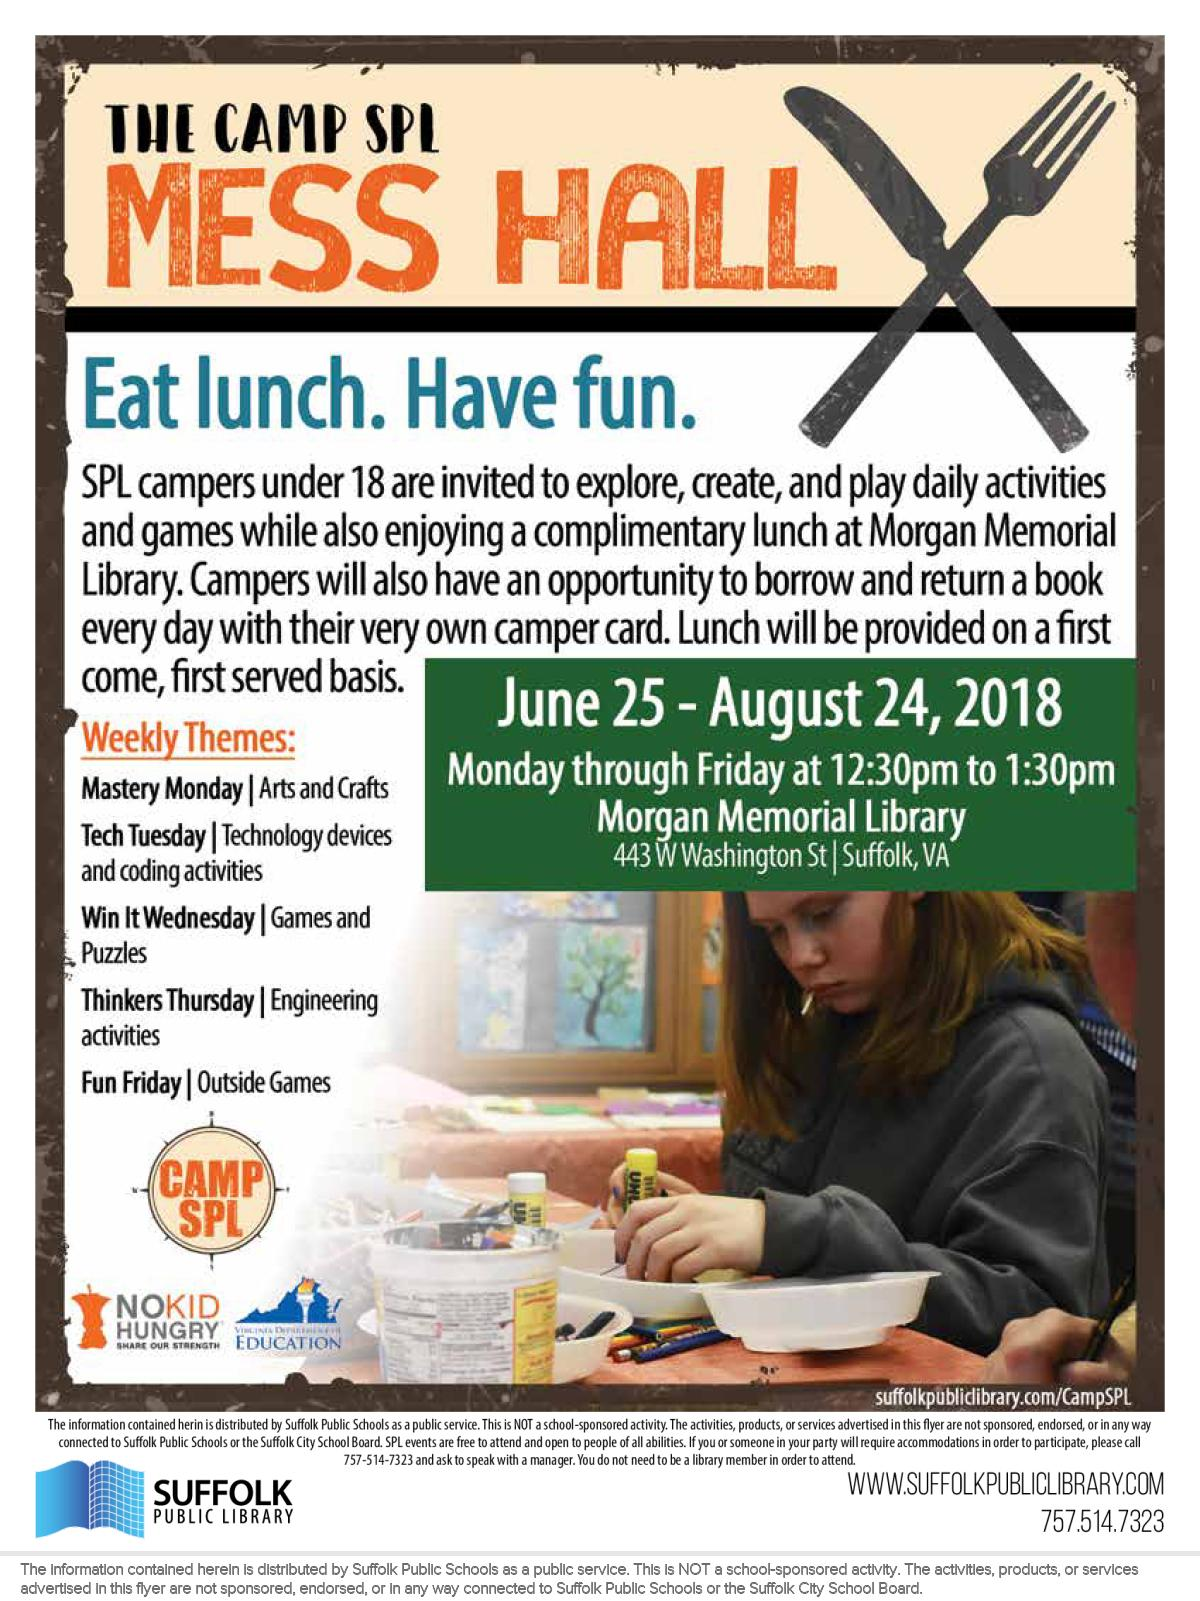 Image of a flyer titled The Camp SPL Mess Hall (Eat Lunch. Have Fun.)